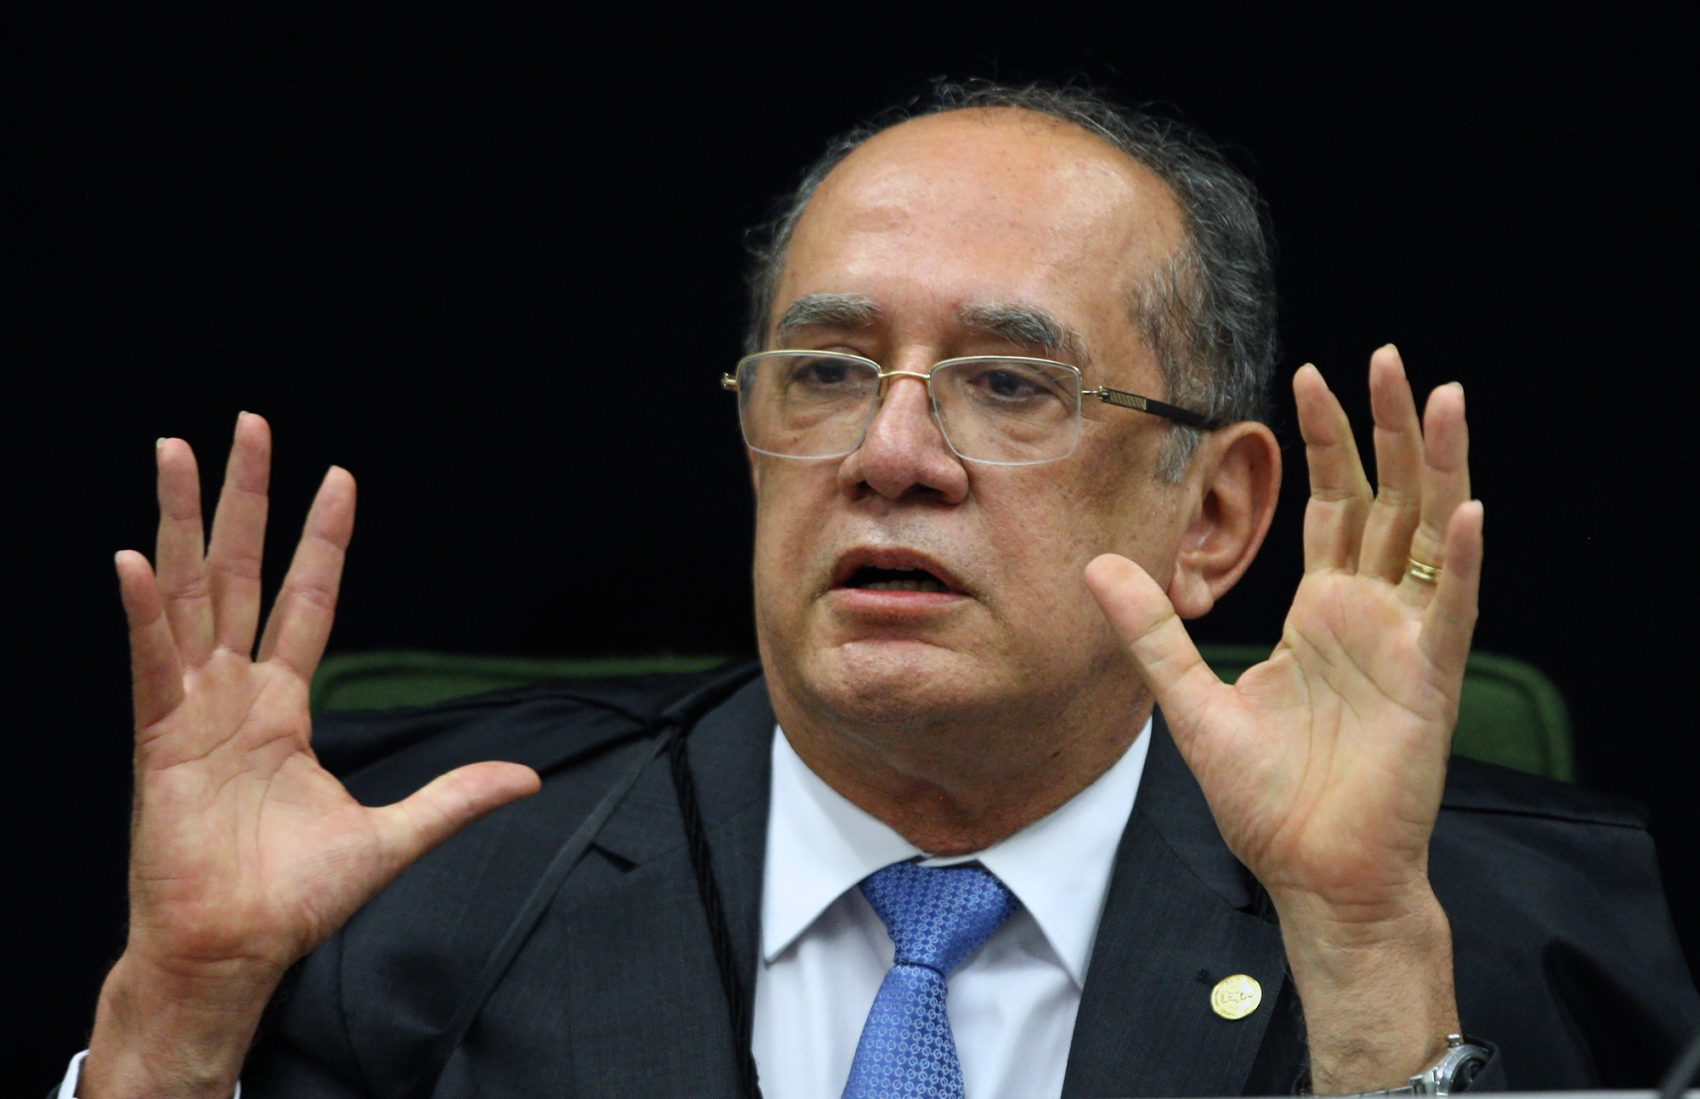 Dallangnol queria o impeachment de Gilmar Mendes